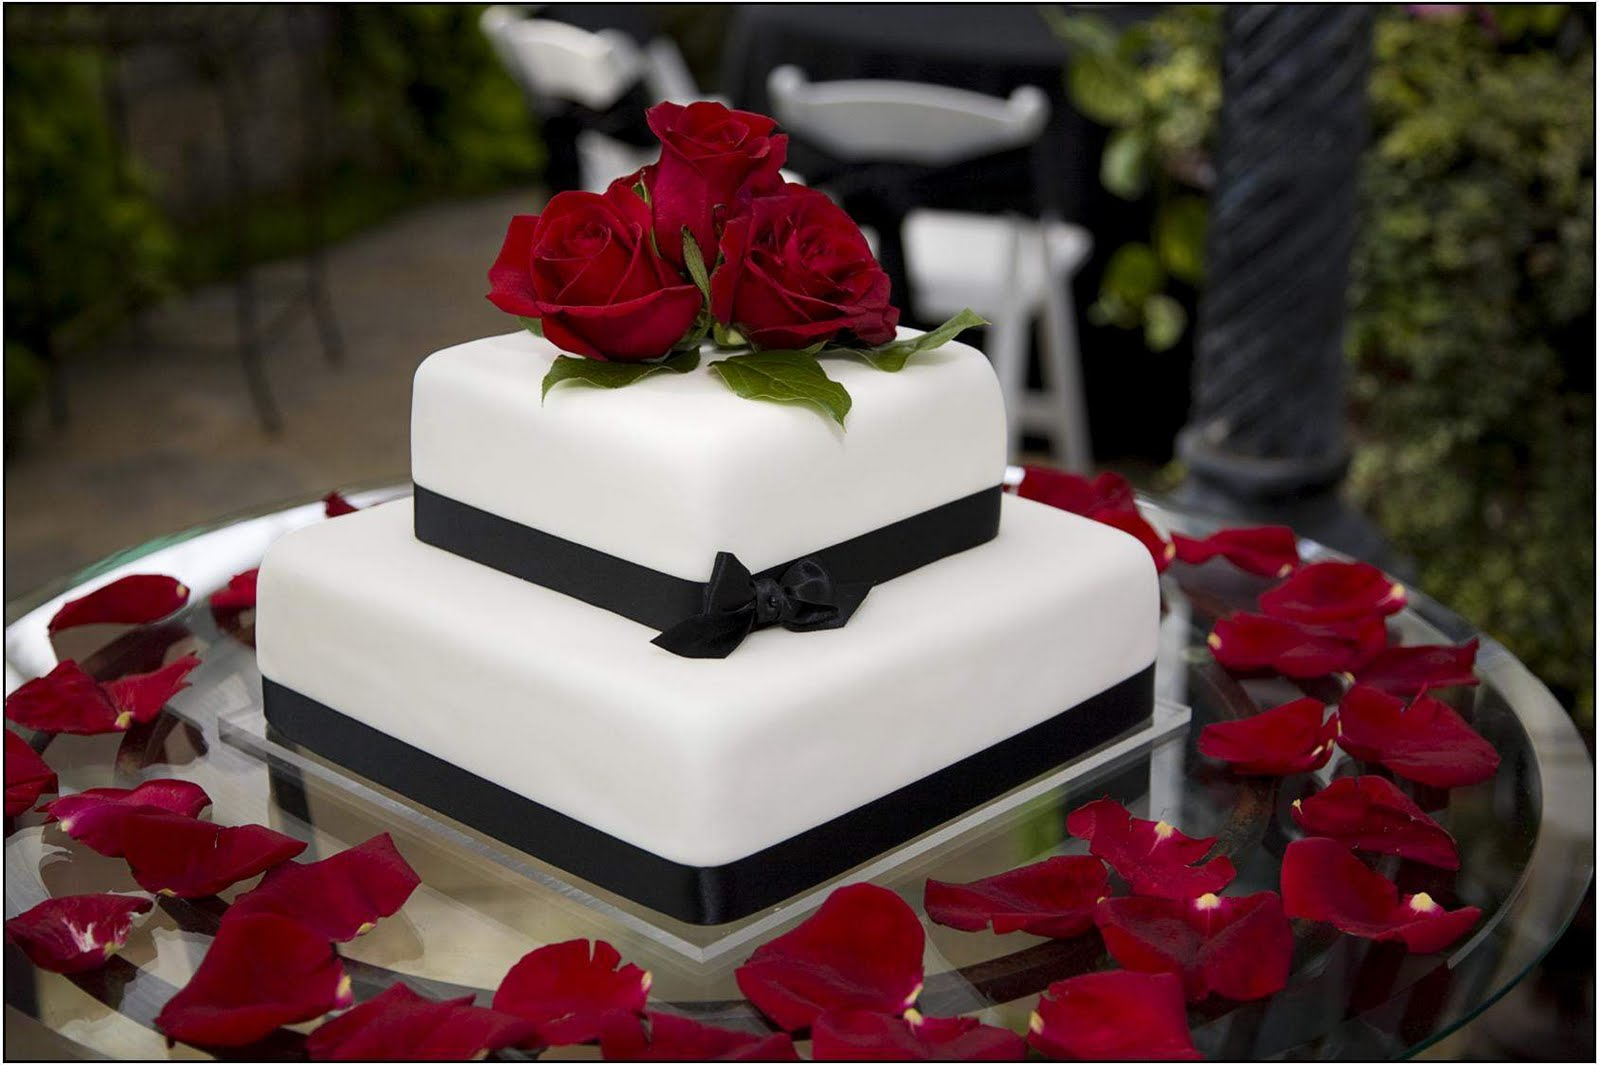 Cake Ideas With Red Roses : Delicious Square Wedding Cakes With Roses Ideas Food and ...